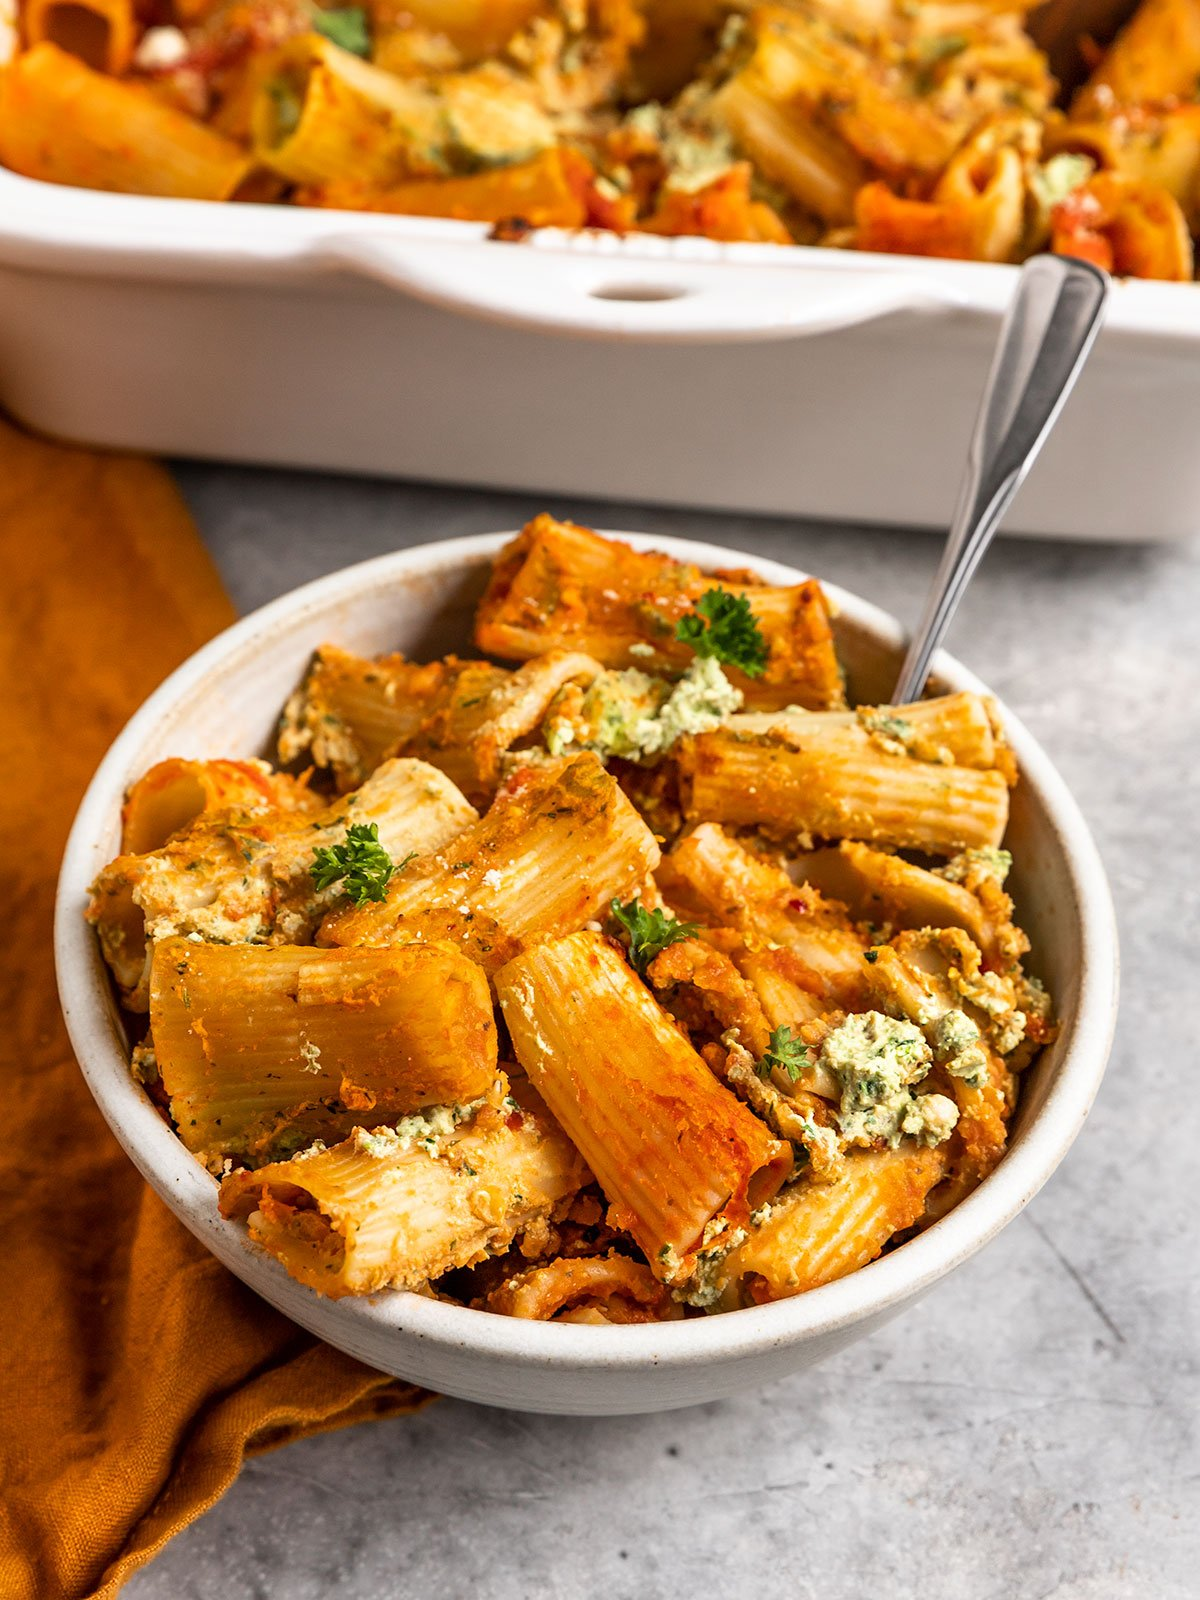 a bowl of pasta with tomato sauce, lentils, tofu ricotta, and parsley